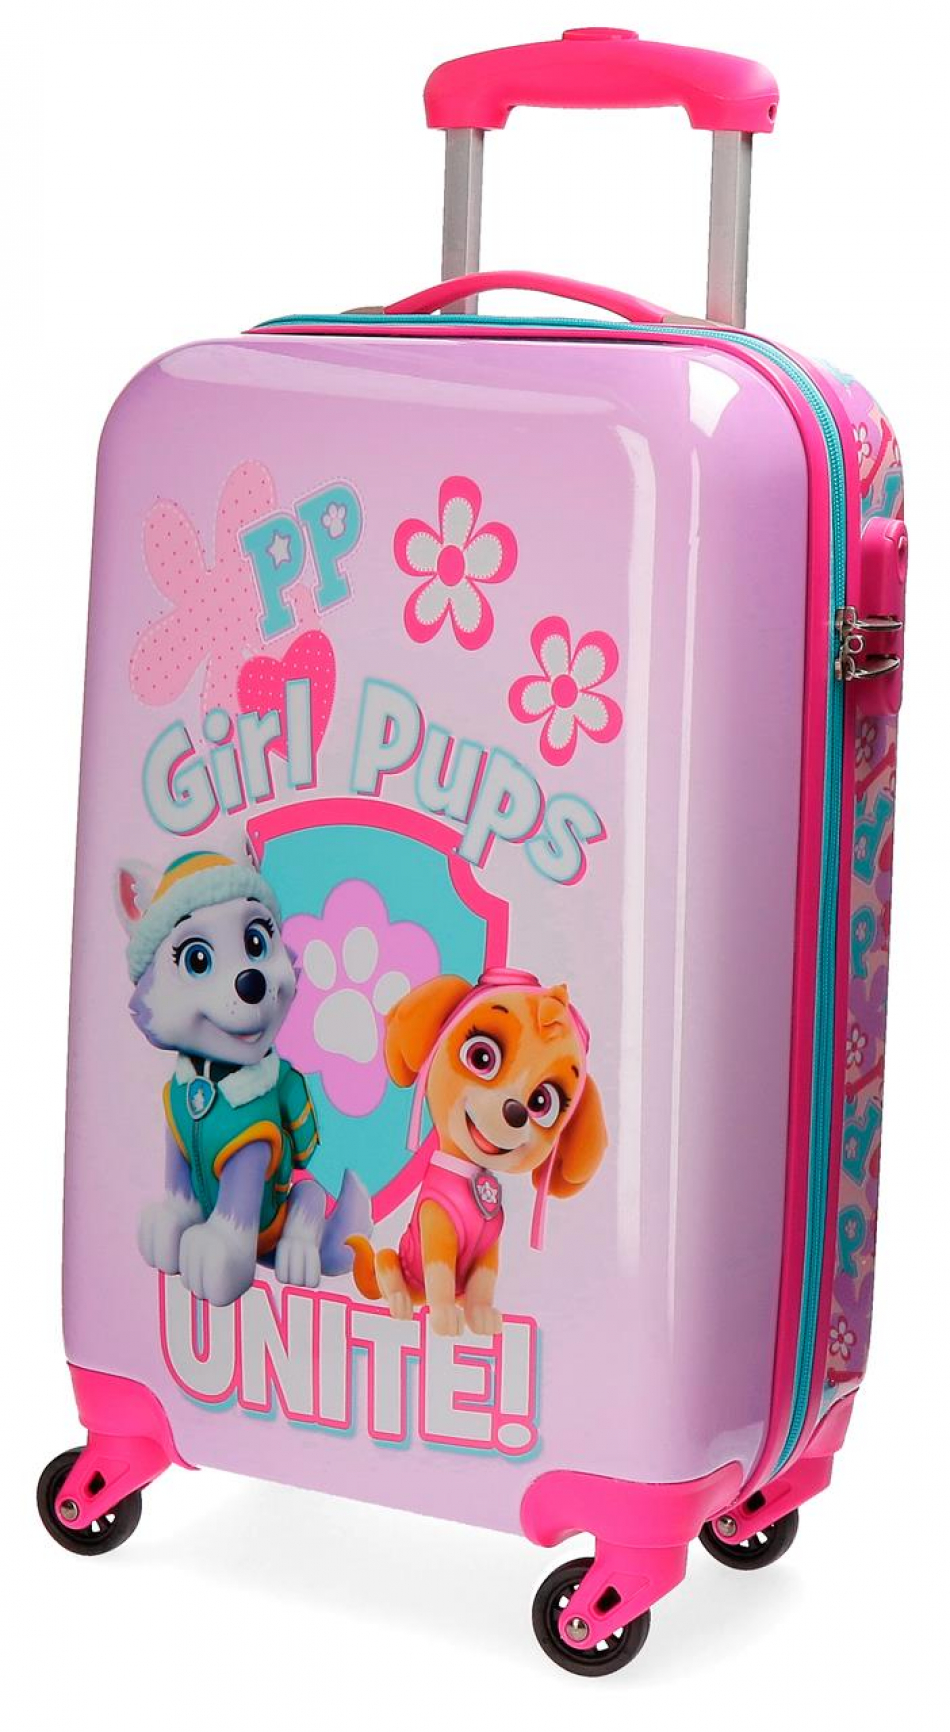 Trolley ABS 55 cm. 4 ruedas La Patrulla Canina Girls pups